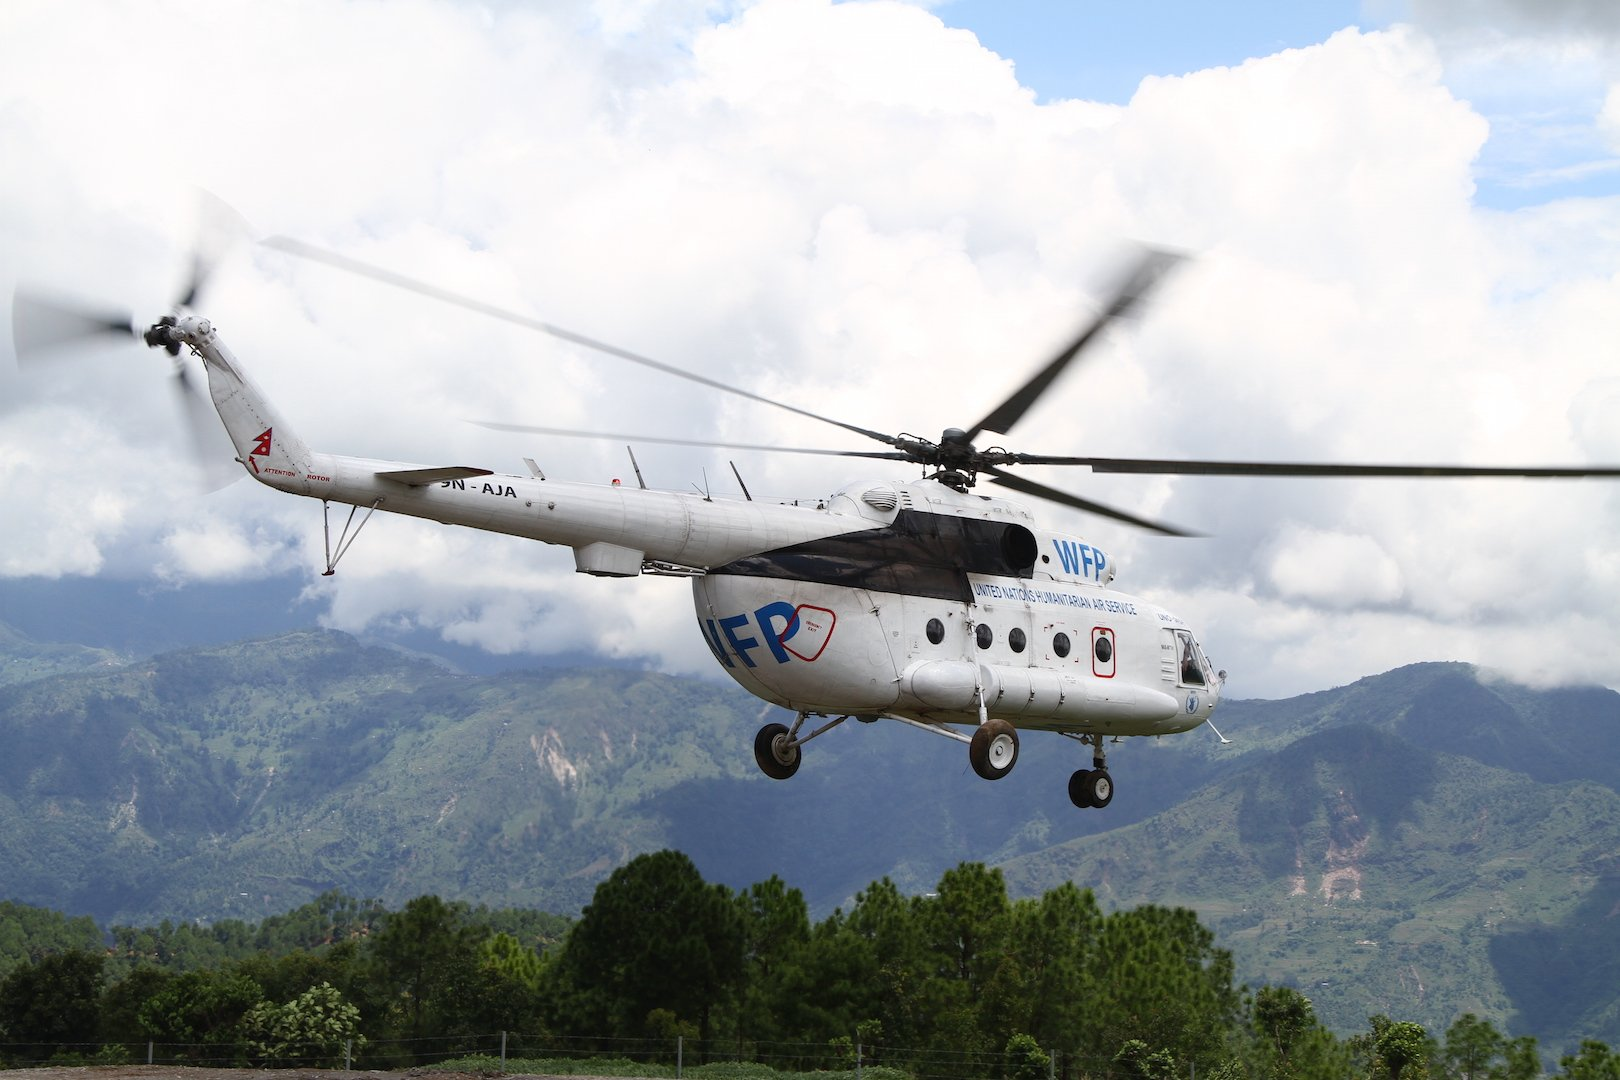 A United Nations helicopter takes off from Chautara, in Nepal's Sindhupalchok District, to transport roofing material to a remote village to rebuild homes damaged in the earthquakes of April and May 2015.